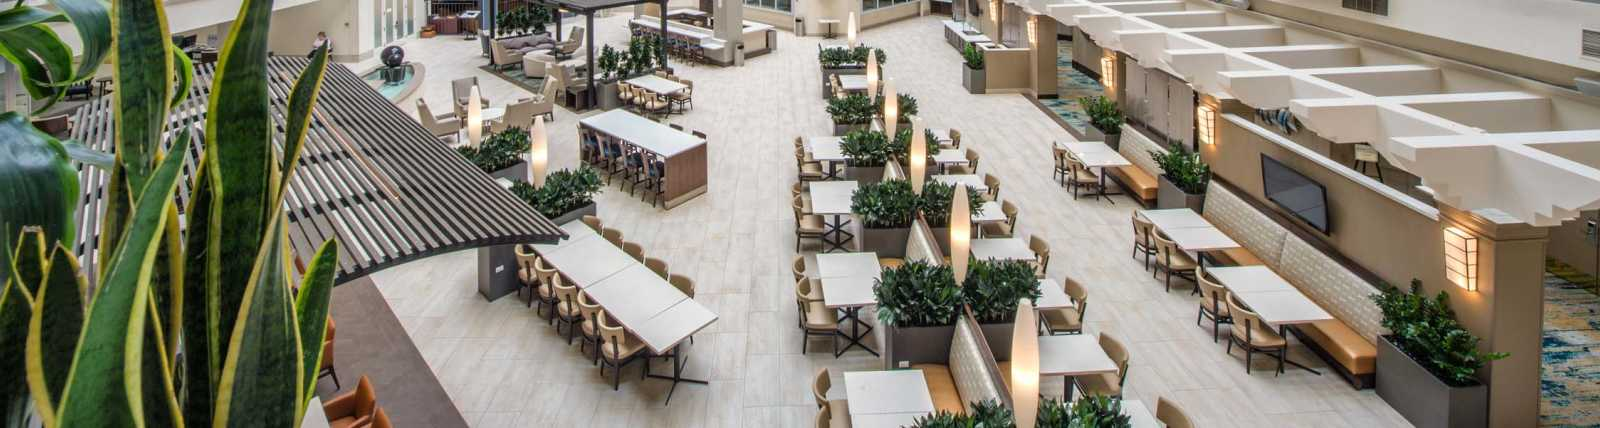 meeting-facility-Embassy_Suites_Seattle-Tacoma_International_Airport_Meeting_Facility-7.jpg